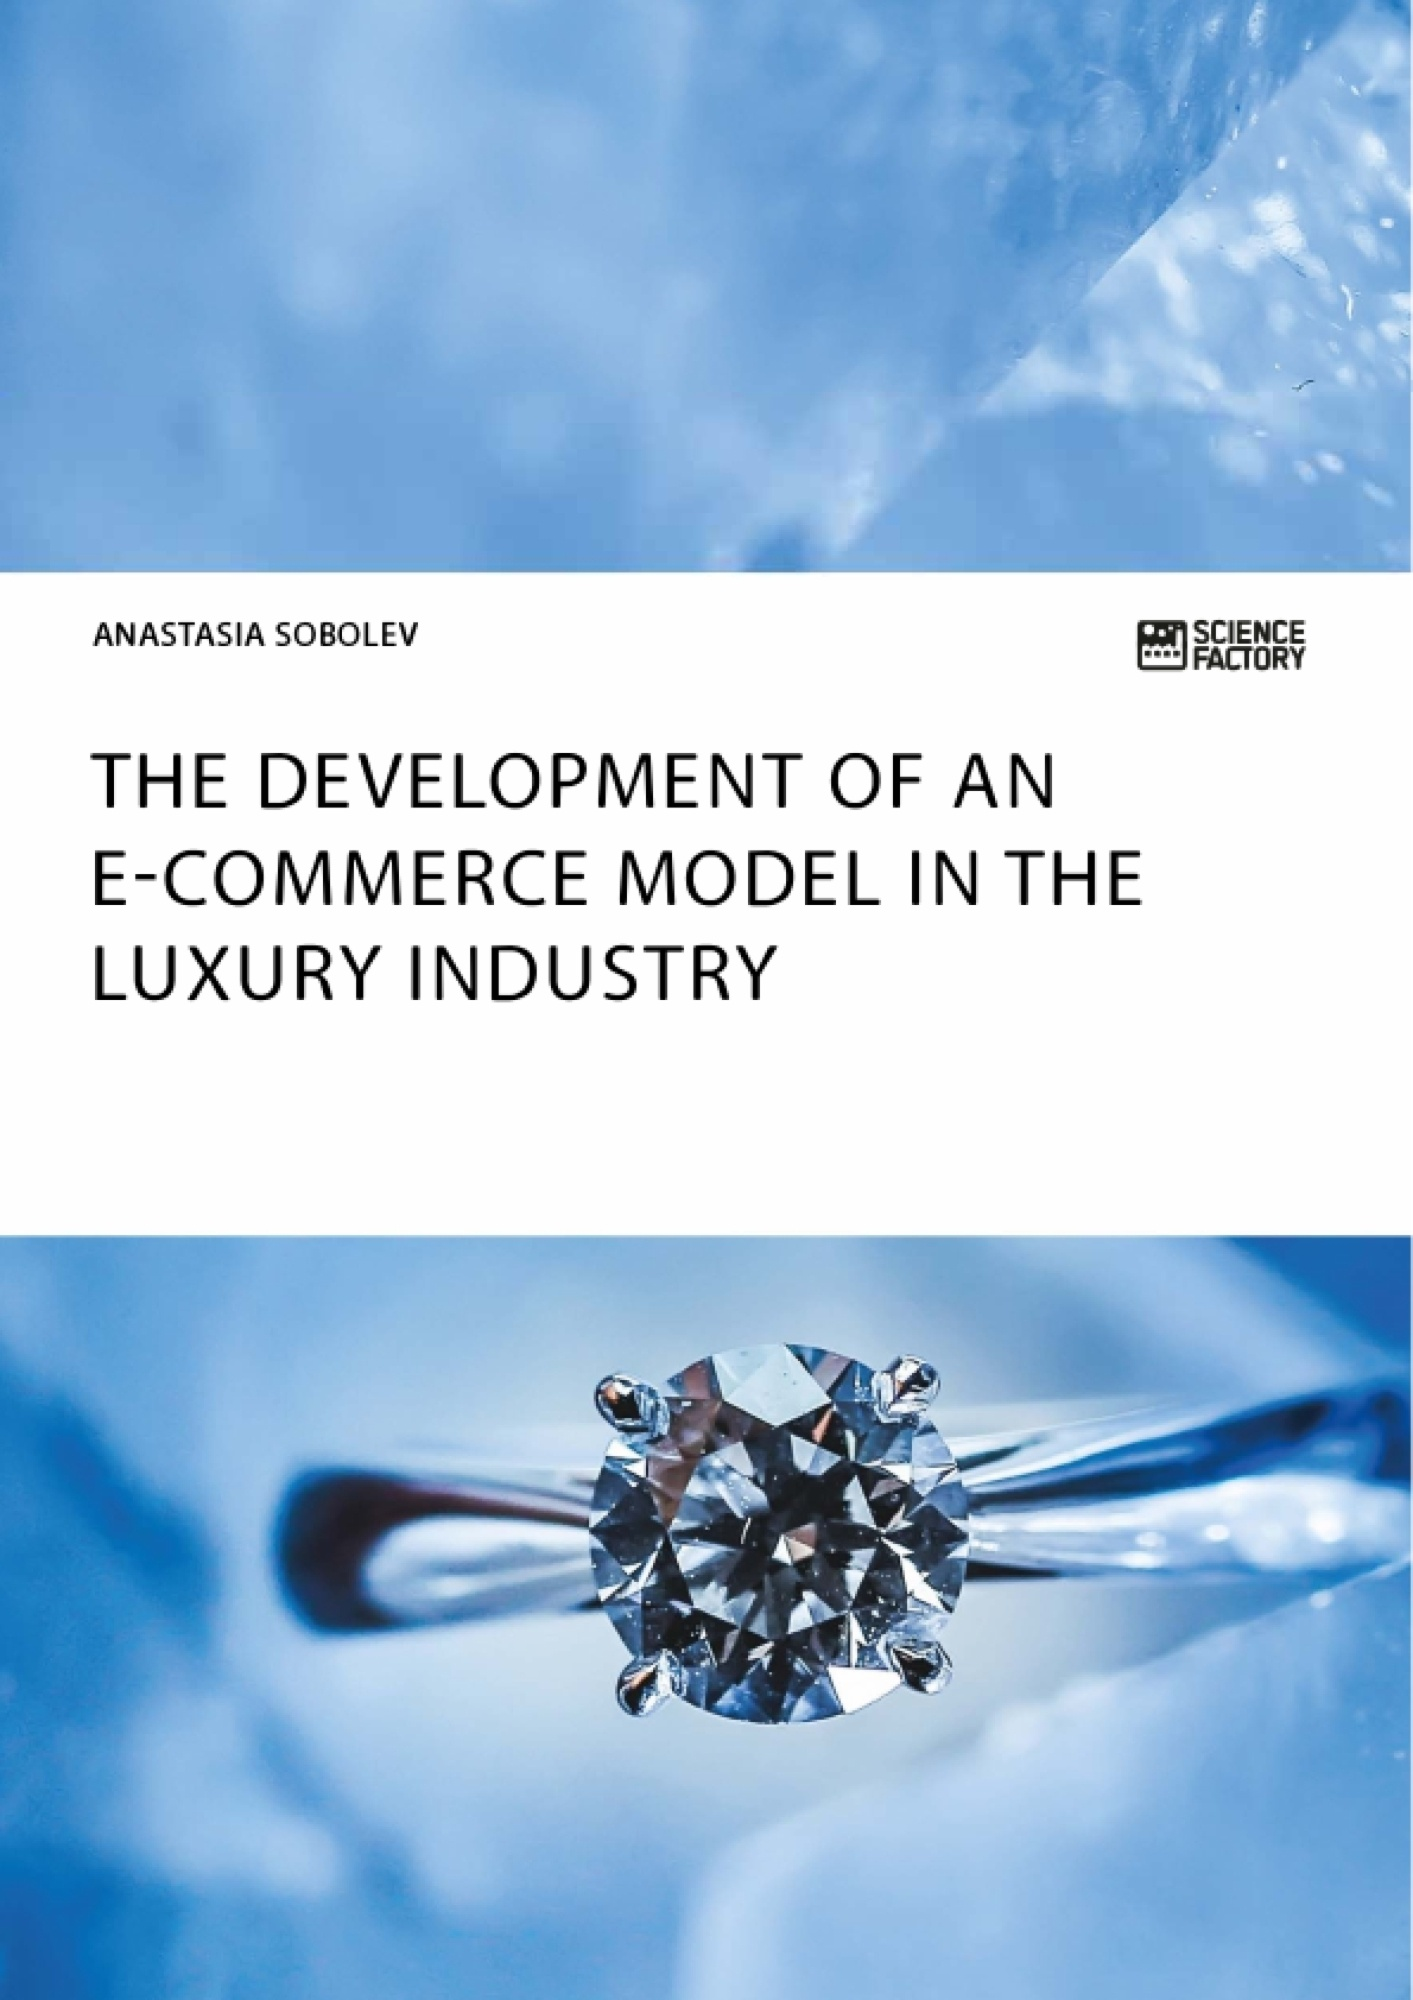 Title: The Development of an E-Commerce Model in the Luxury Industry